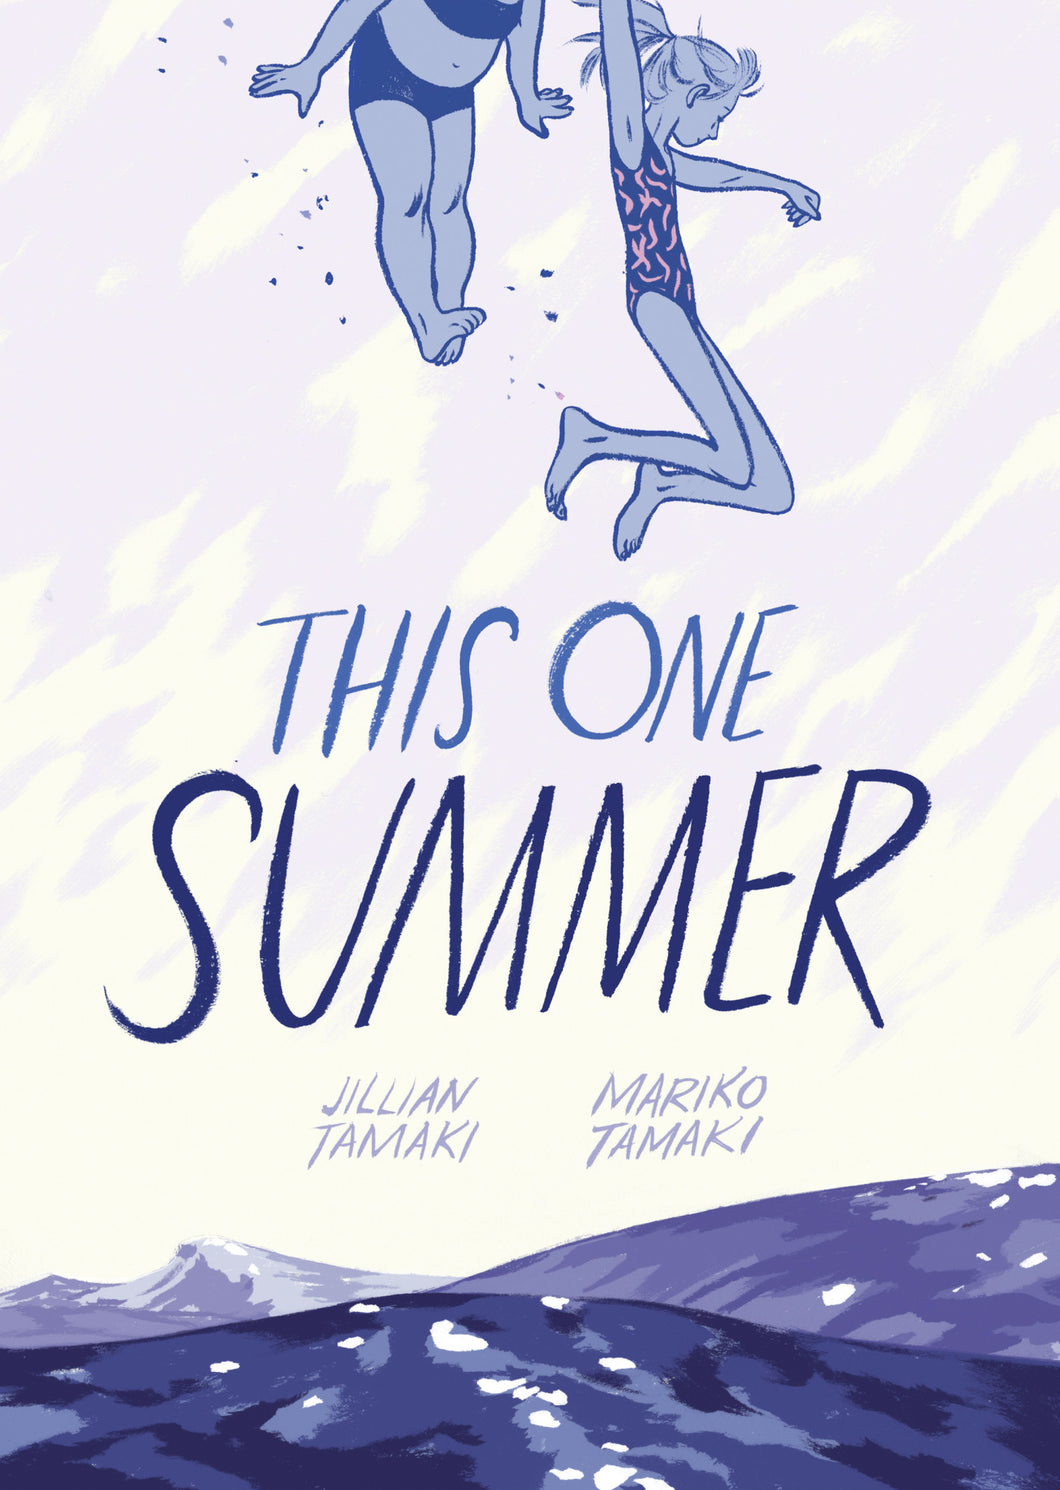 This One Summer by Mariko and Jillian Tamaki